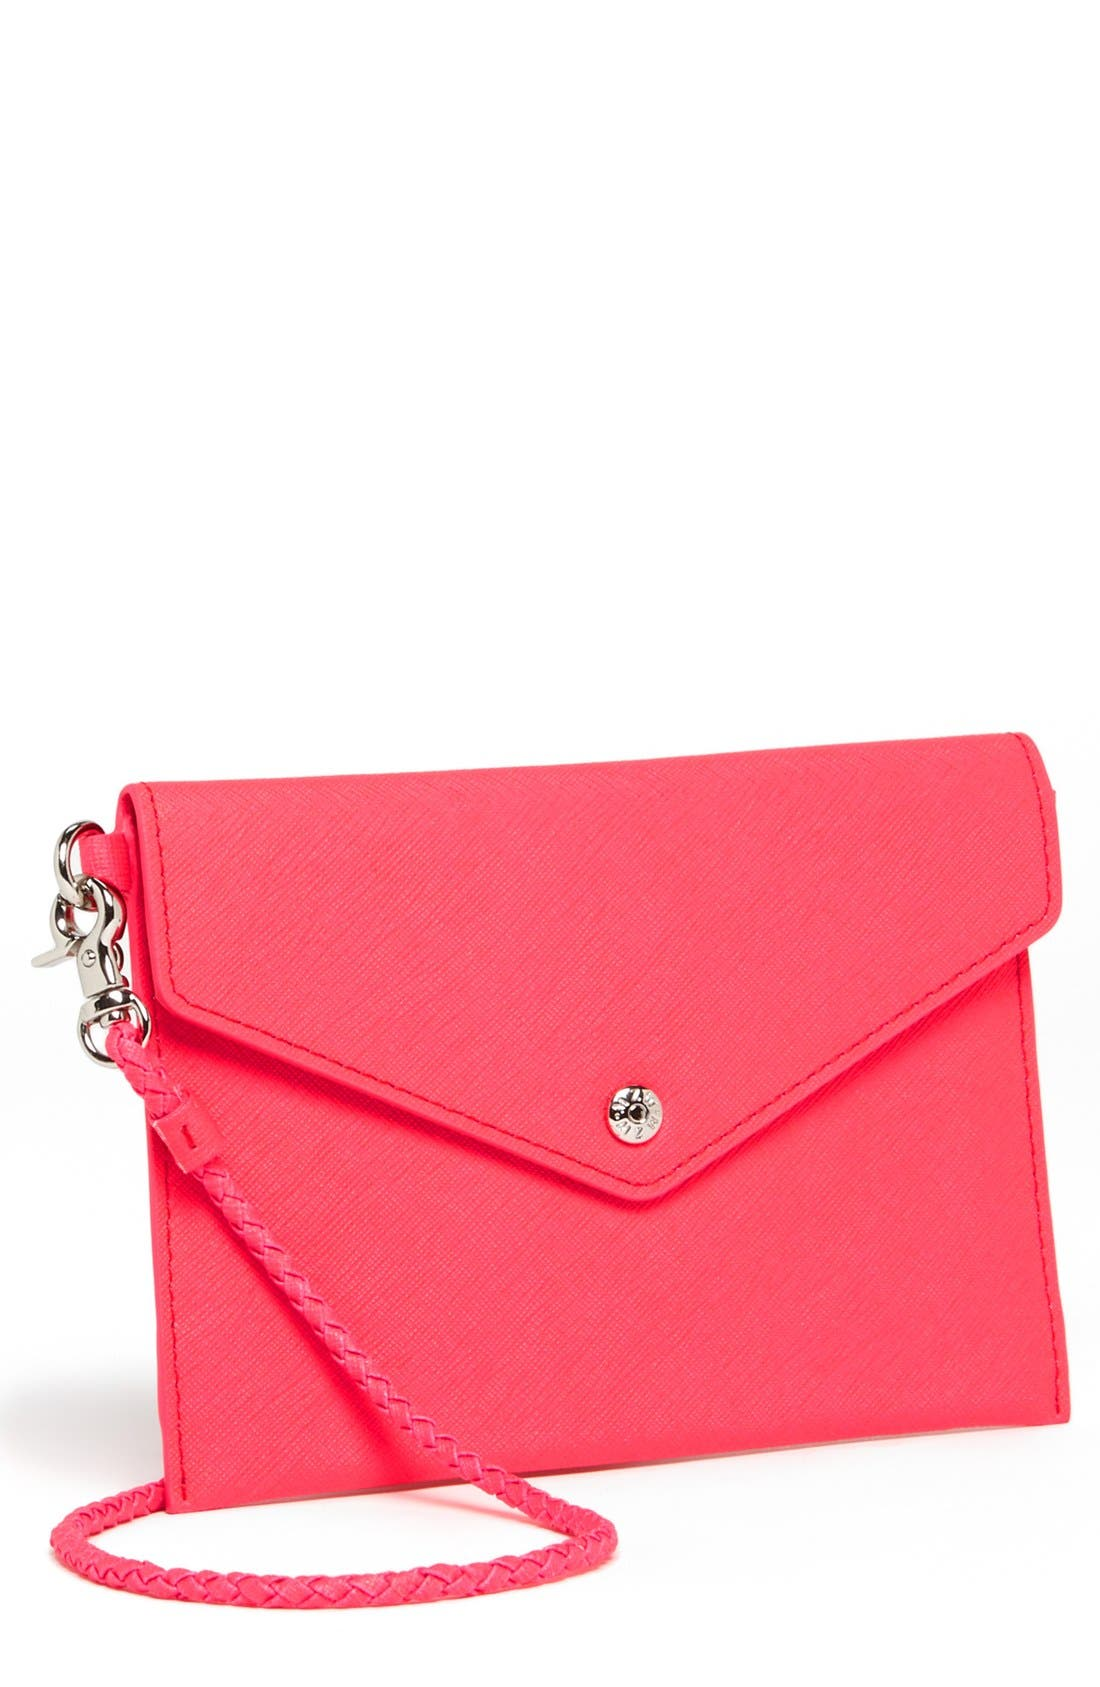 Alternate Image 1 Selected - MZ Wallace 'Greta' Crossbody Envelope Clutch